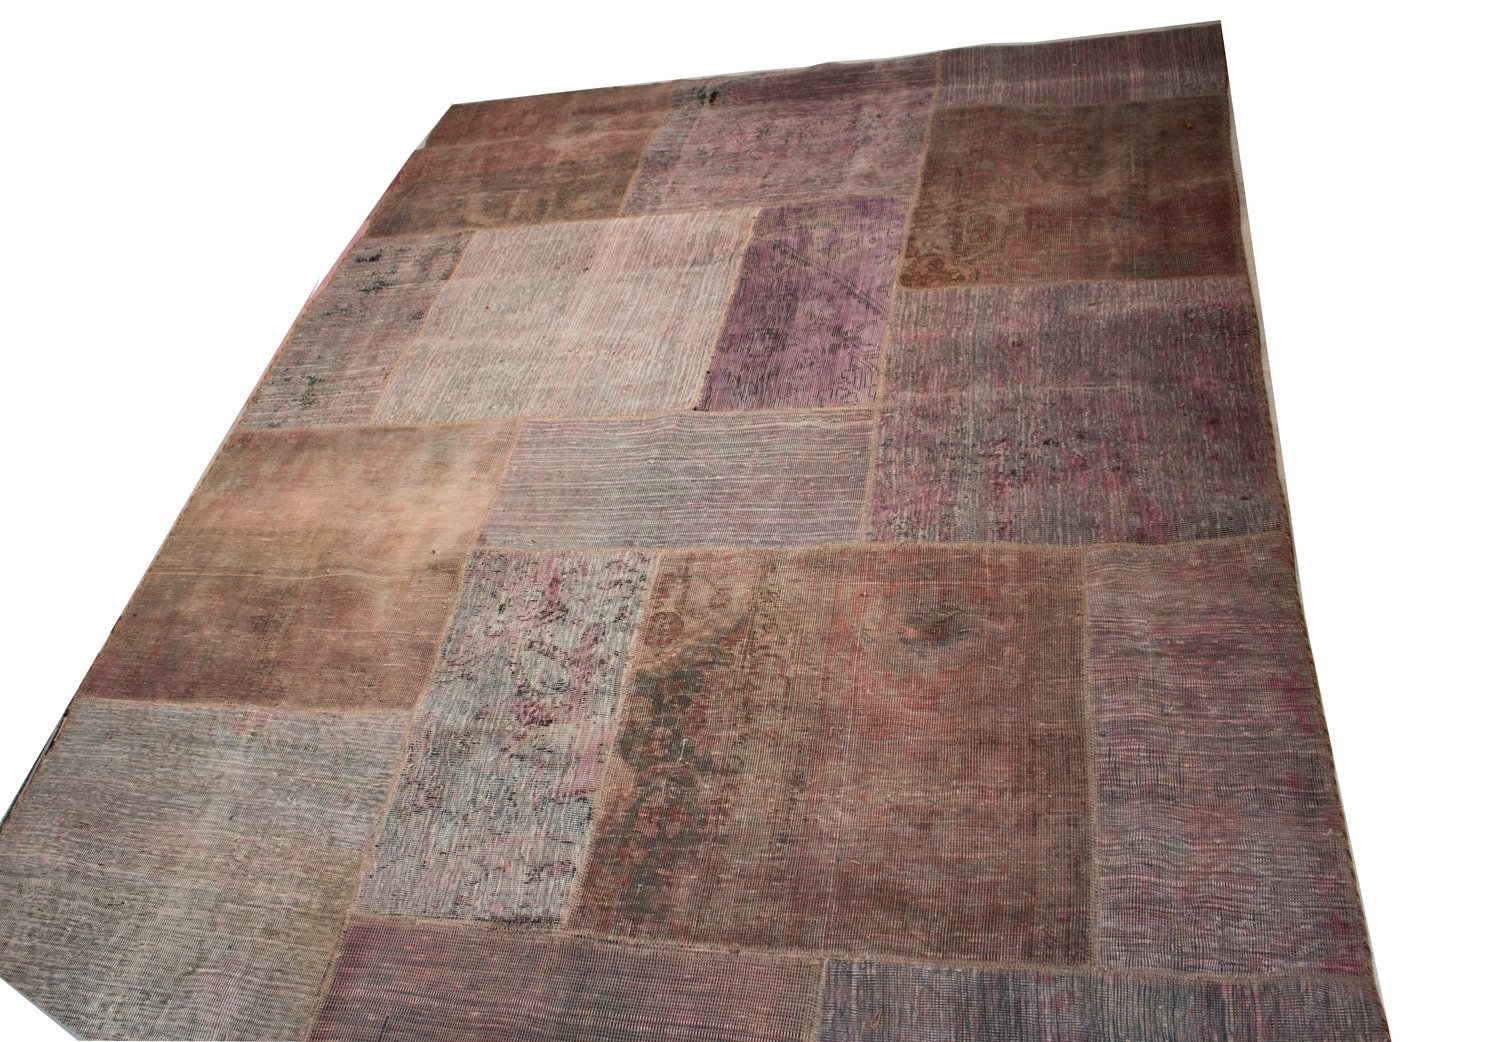 Tappeti Mucca Patchwork Trendy Patchwork Vintage Xcm With Tappeti Patchwork